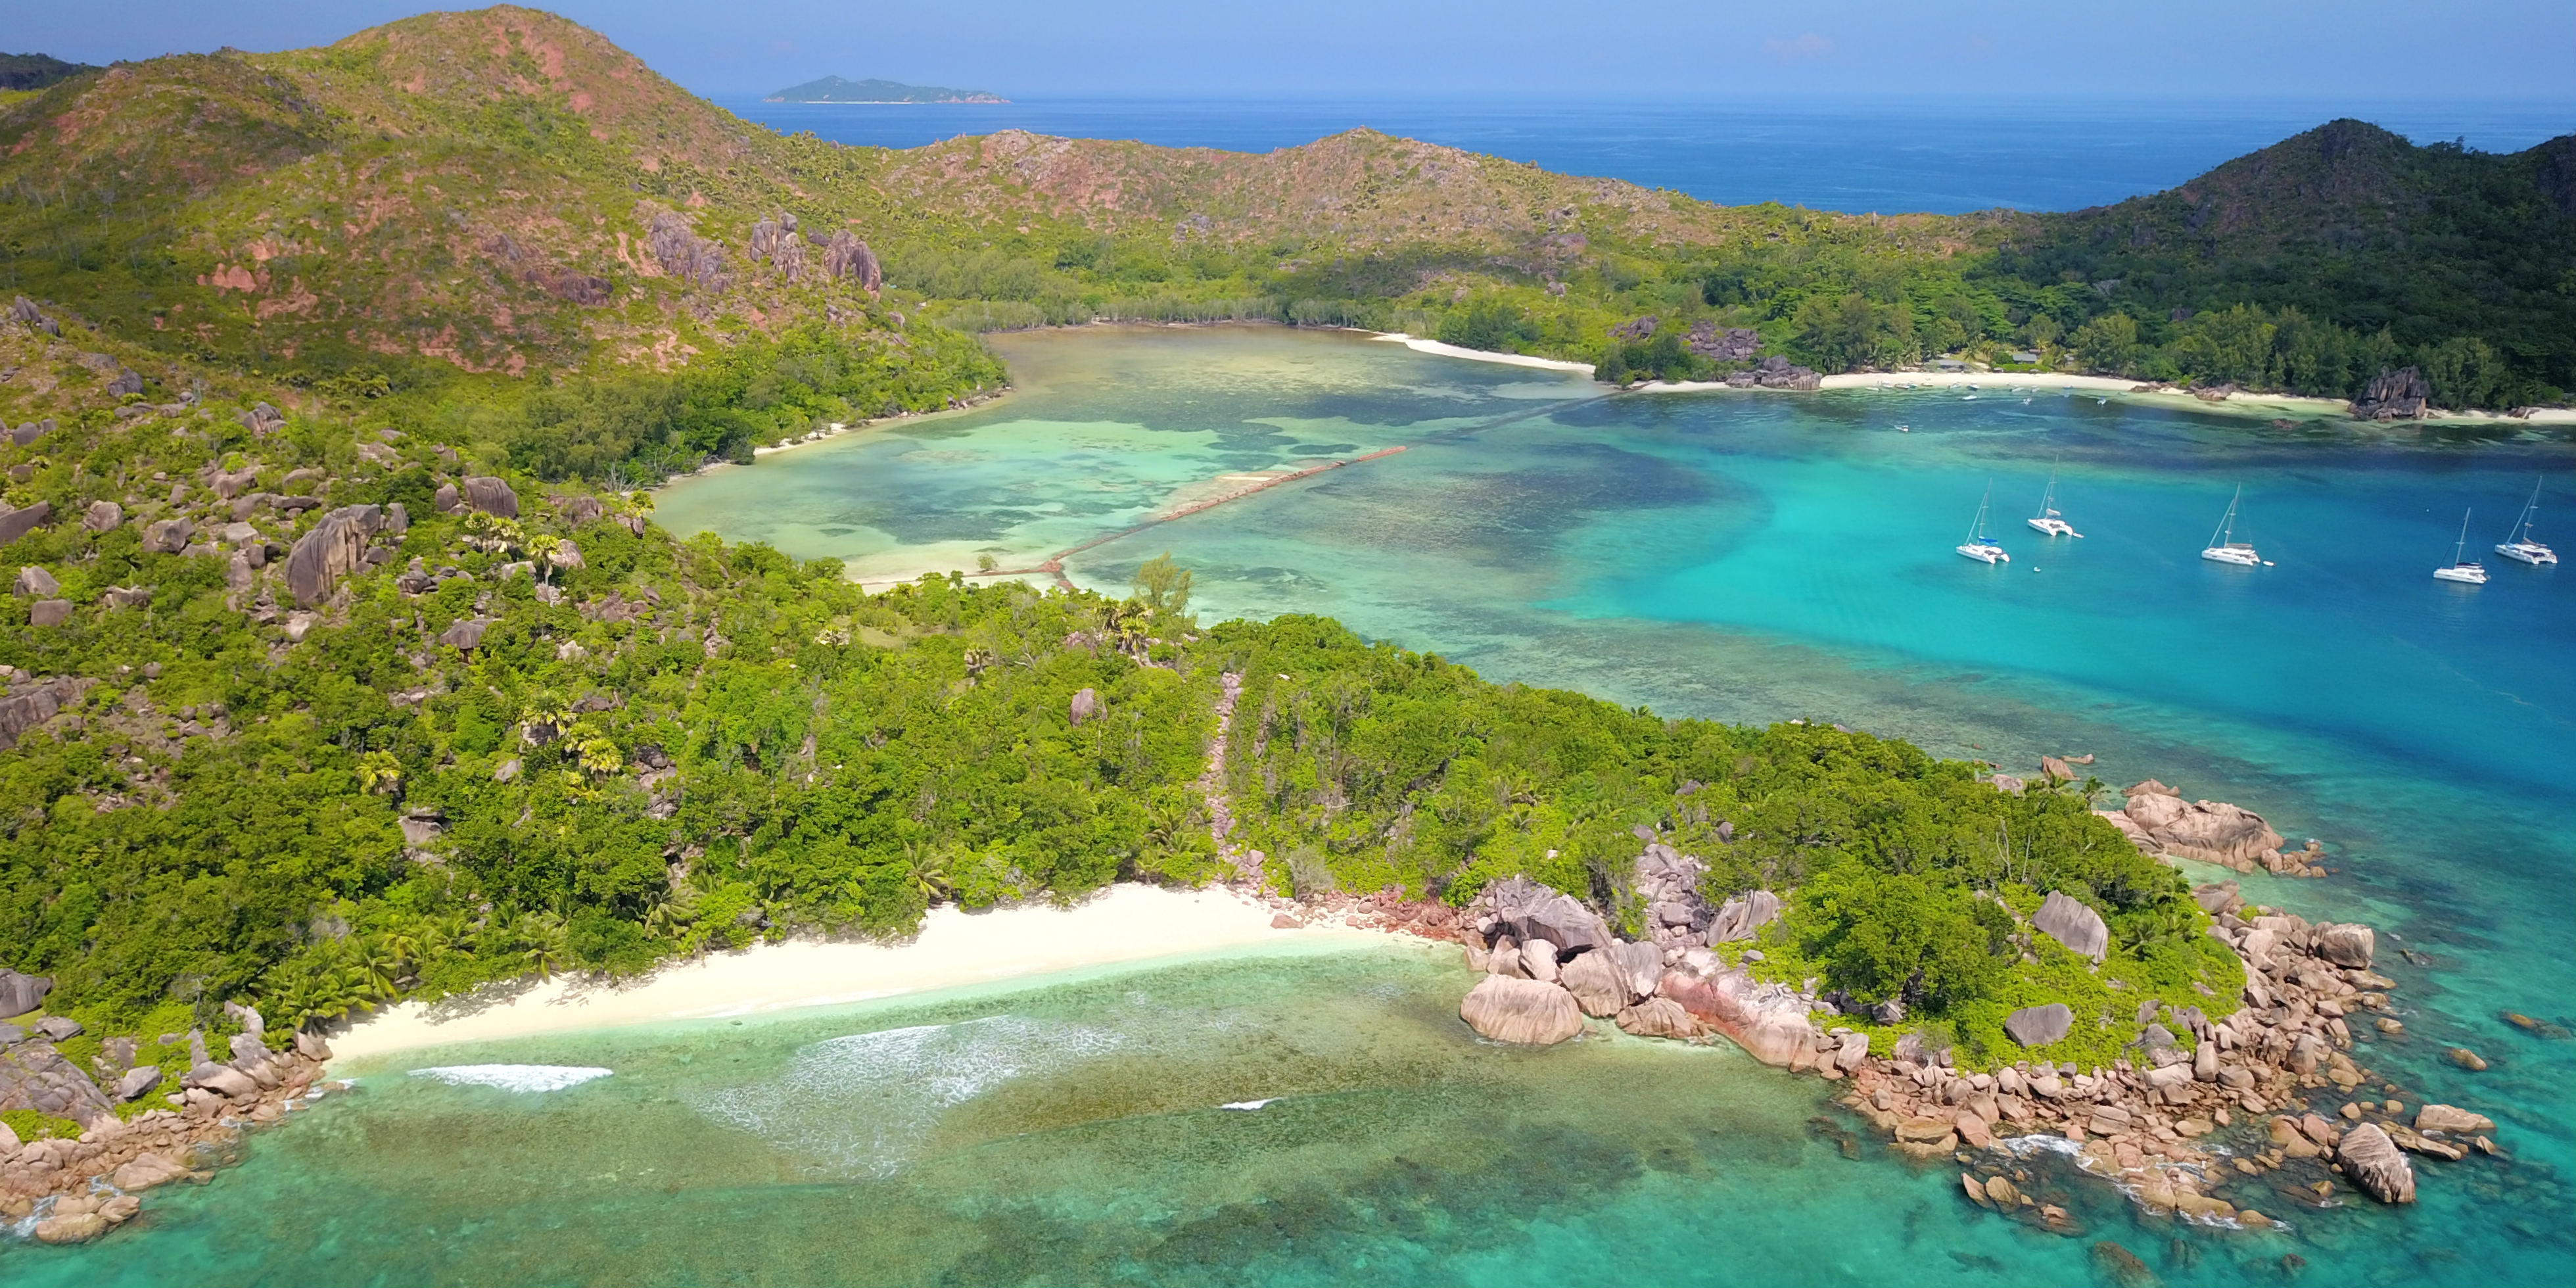 This remote GVI base runs wildlife conservation programs together with the Seychelles national park authority.